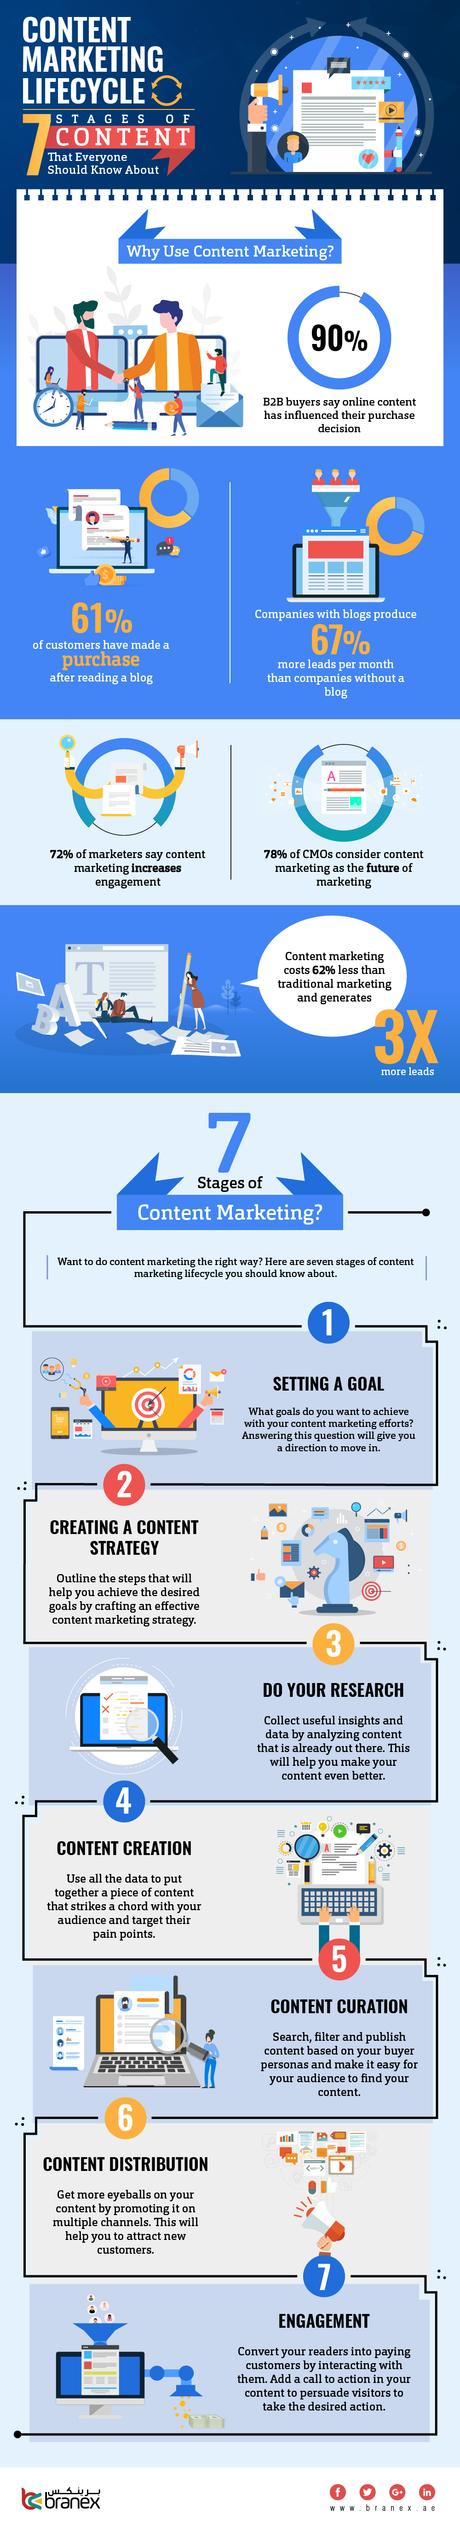 All small businesses should have an internet presence as part of their marketing mix since most consumers go online to research before they buy. 7 Stages of Content Marketing Lifecycle ...